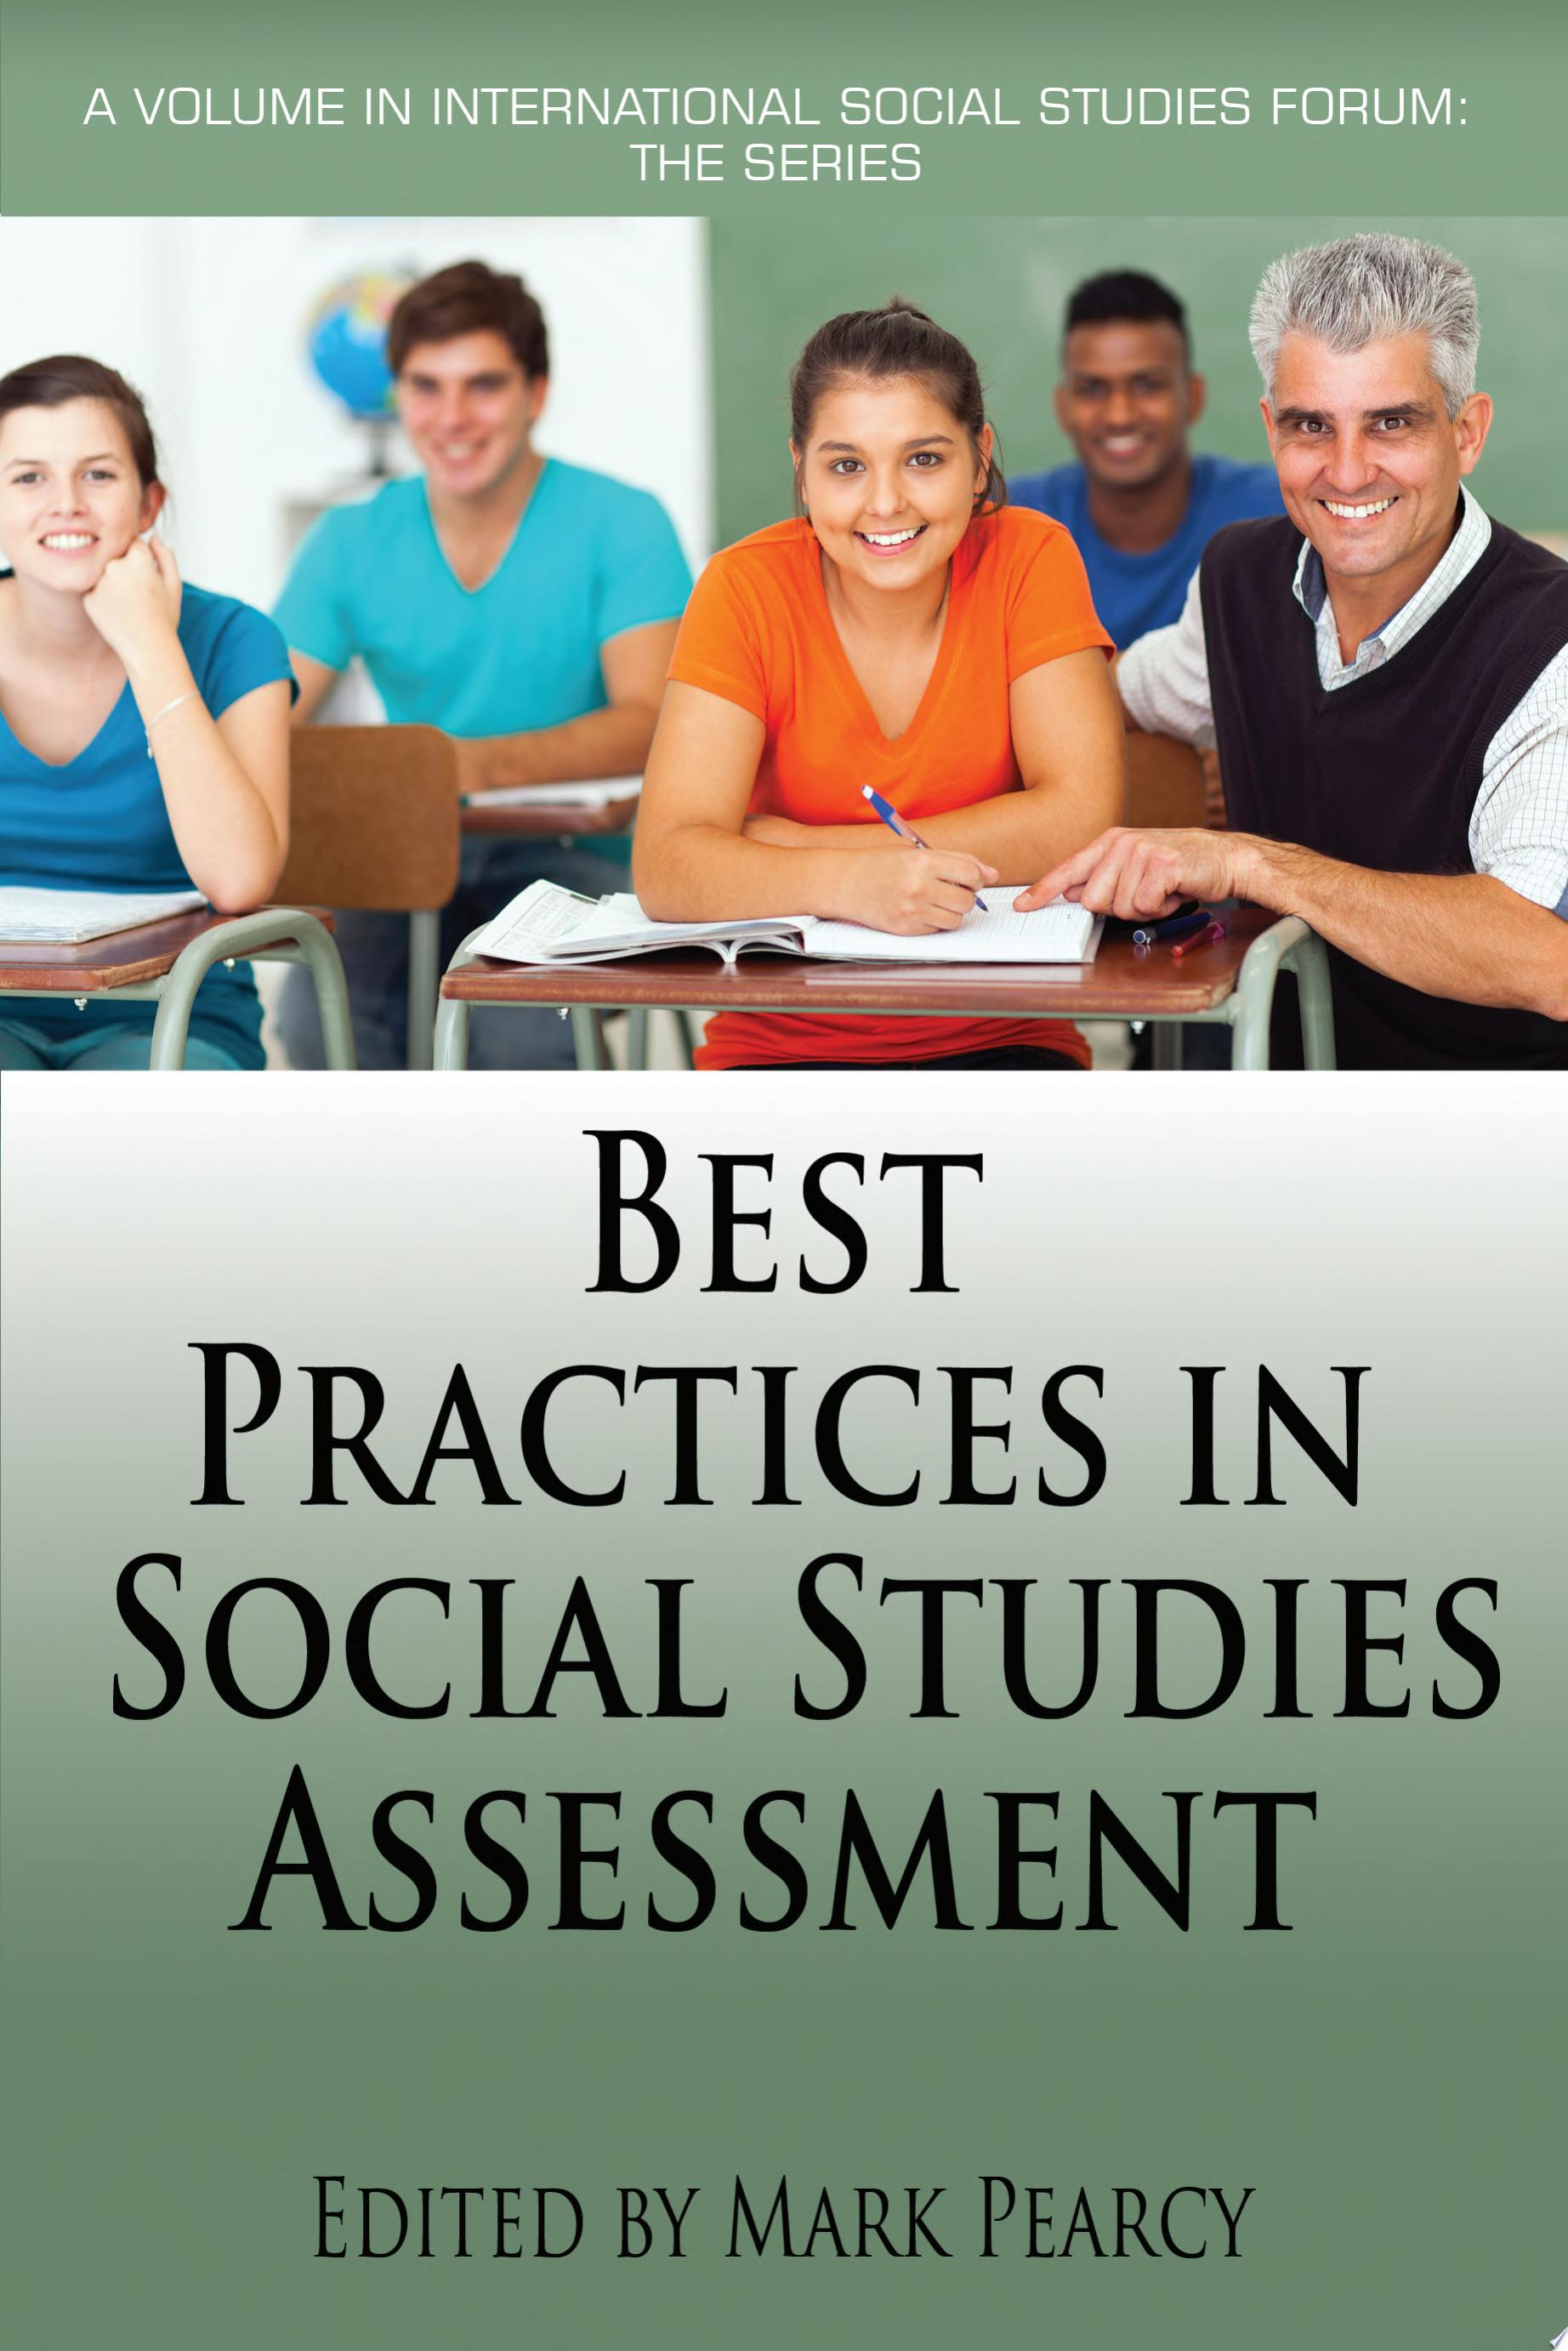 Best Practices in Social Studies Assessment